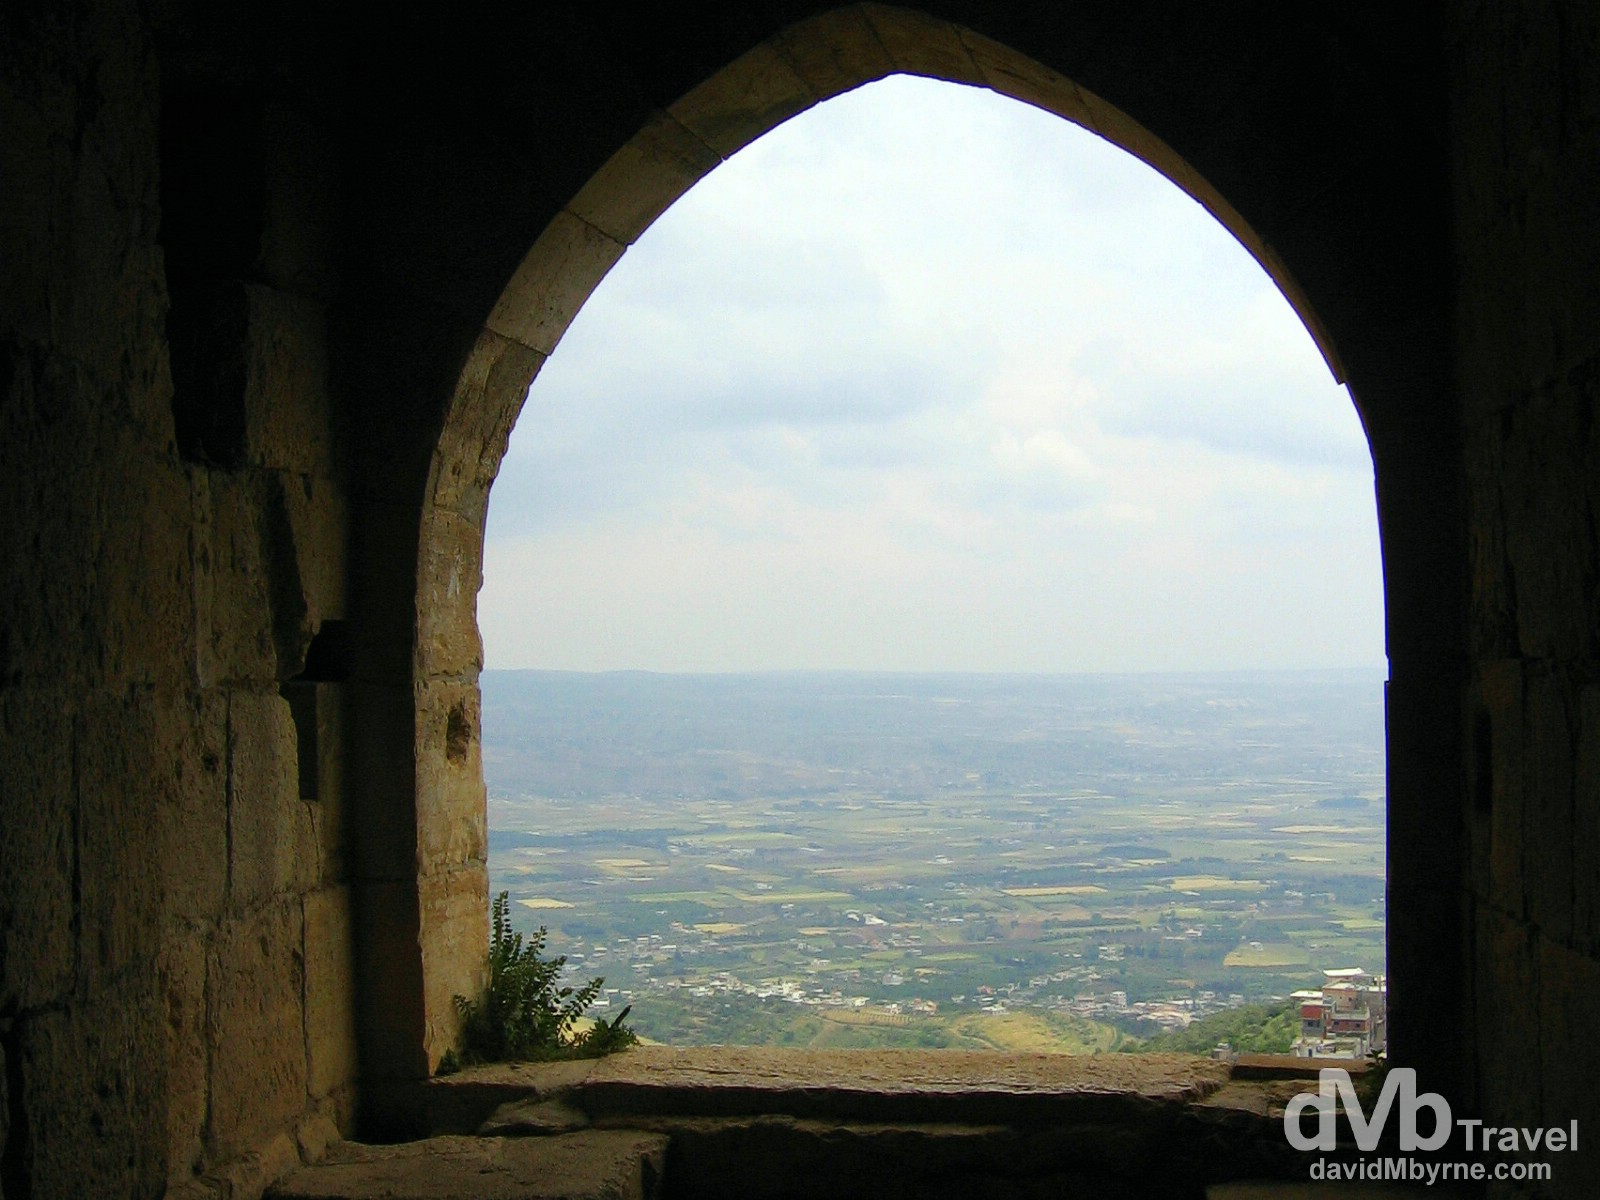 The view of the Syrian countryside from an opening of the Crusader castle Crac des Chevaliers. May 7, 2008.